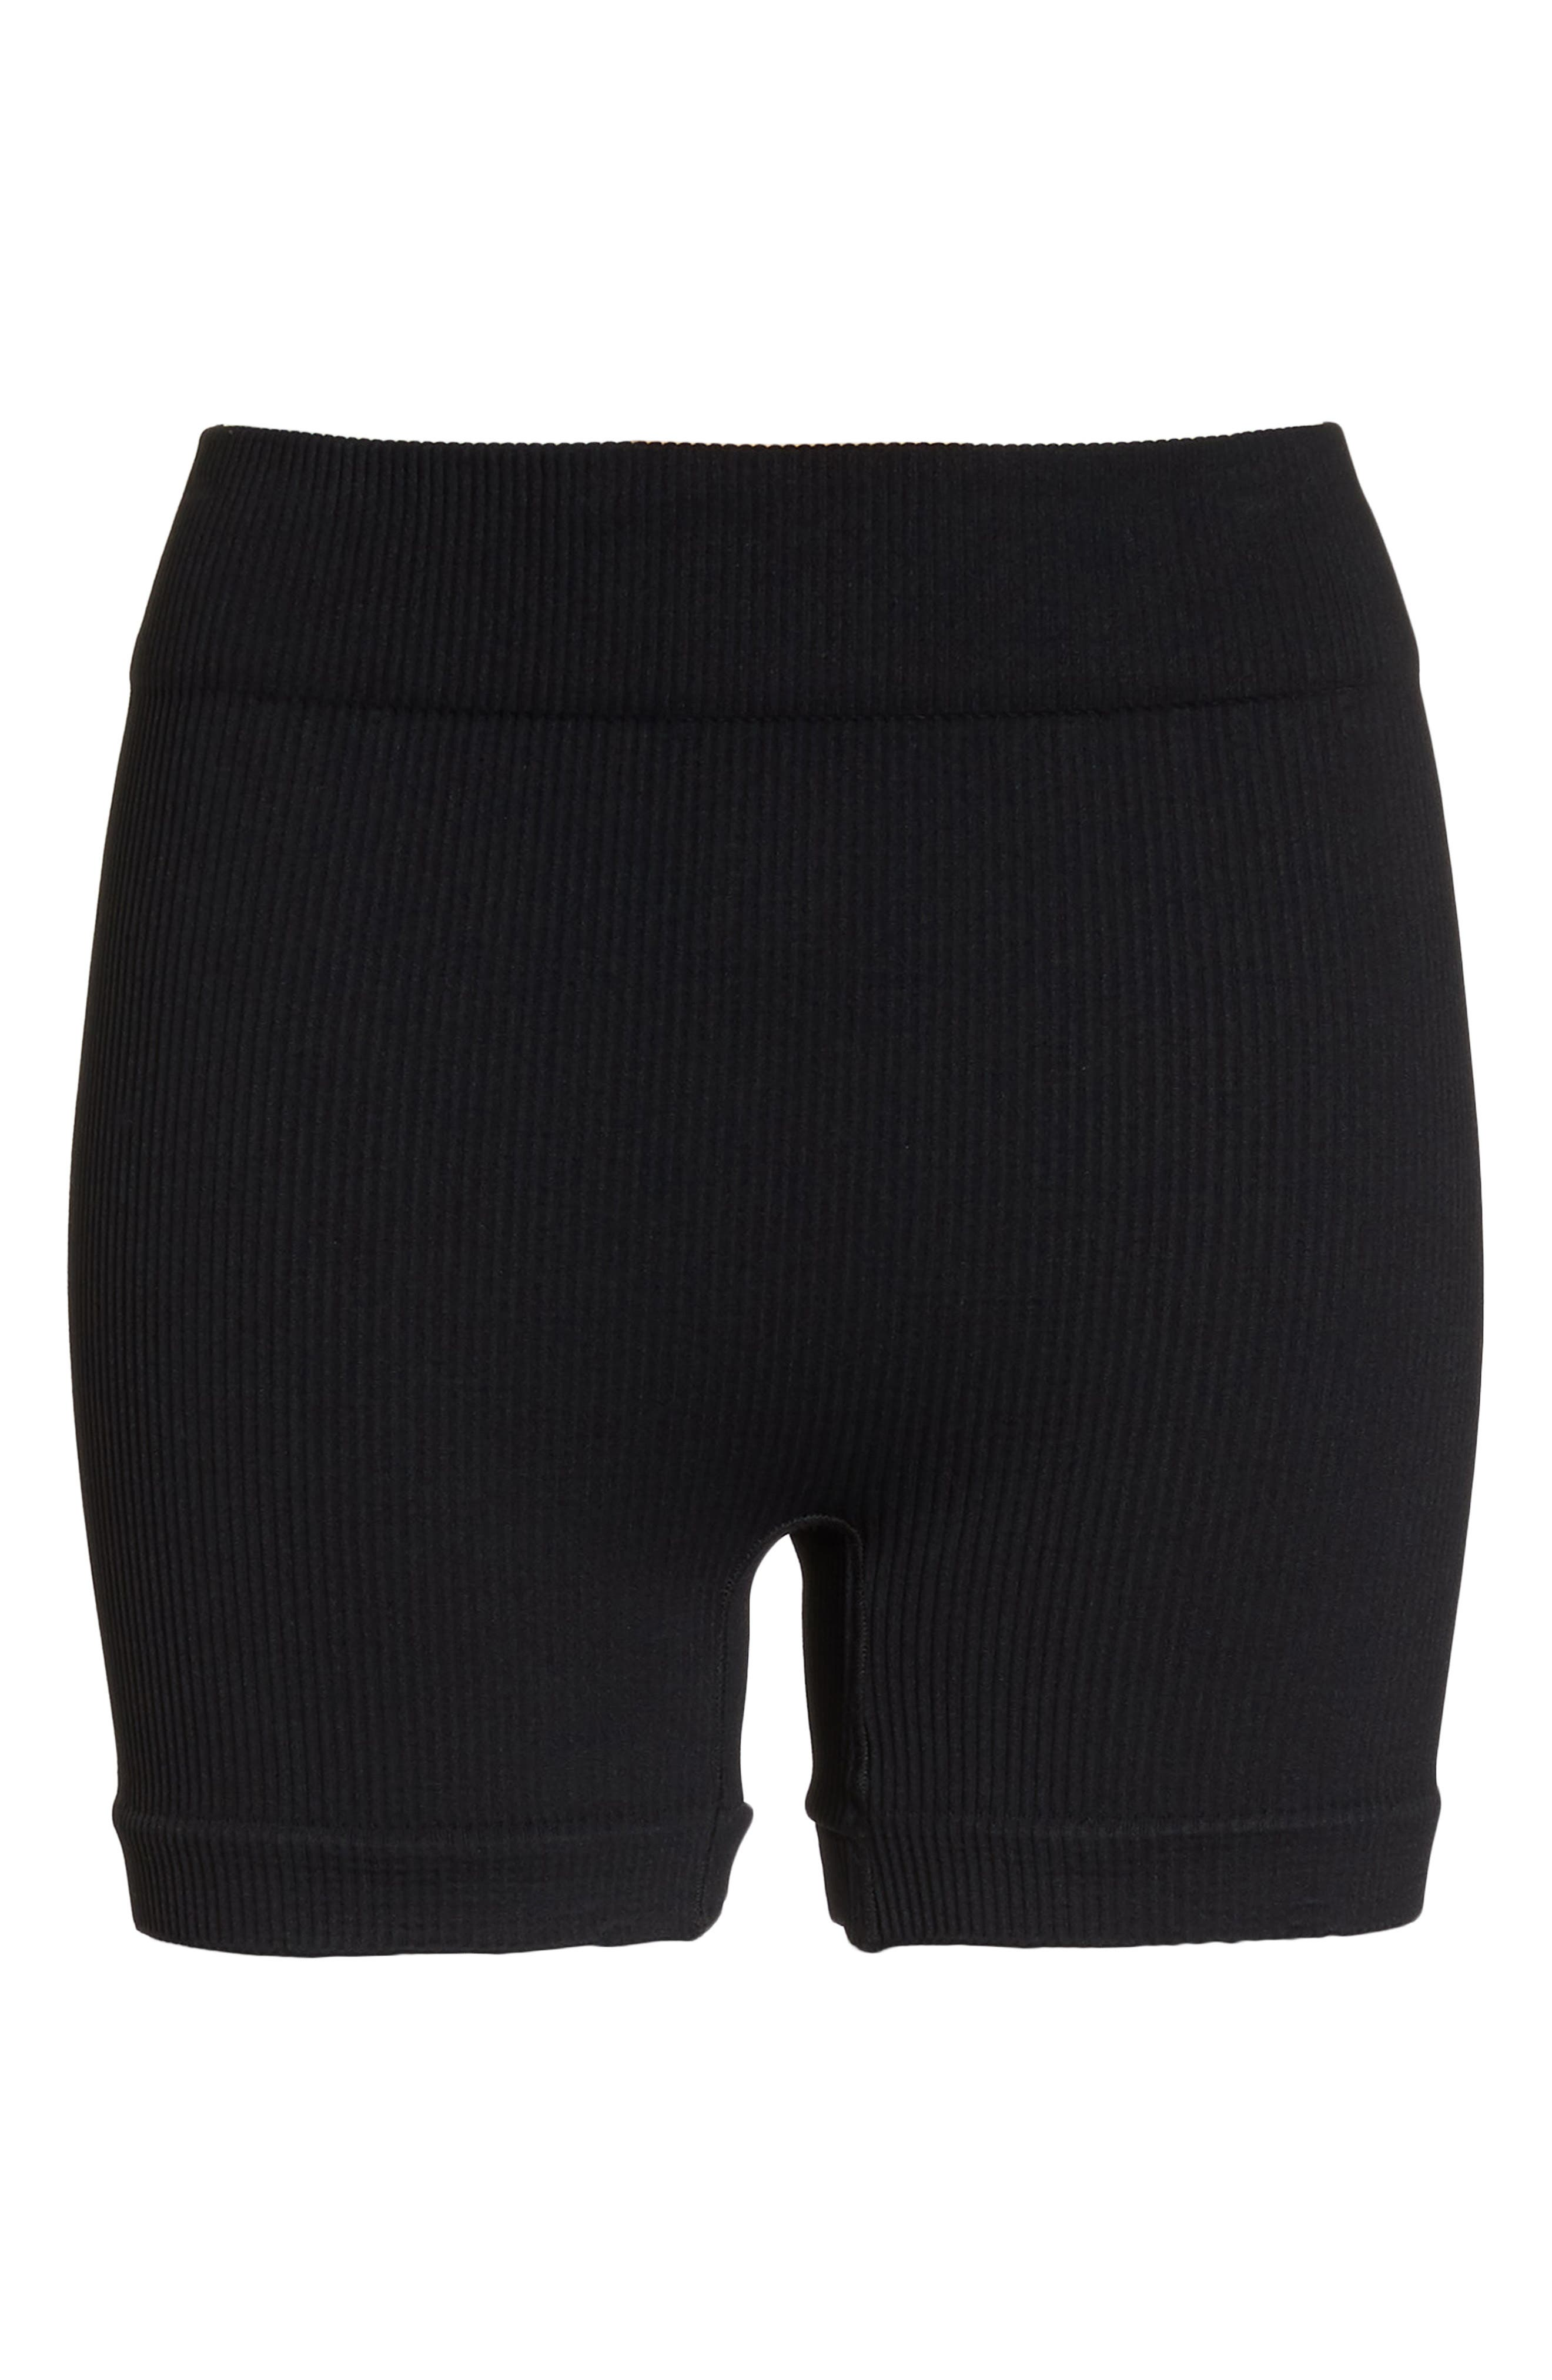 Free People Seamless Shorts,                             Alternate thumbnail 7, color,                             Black